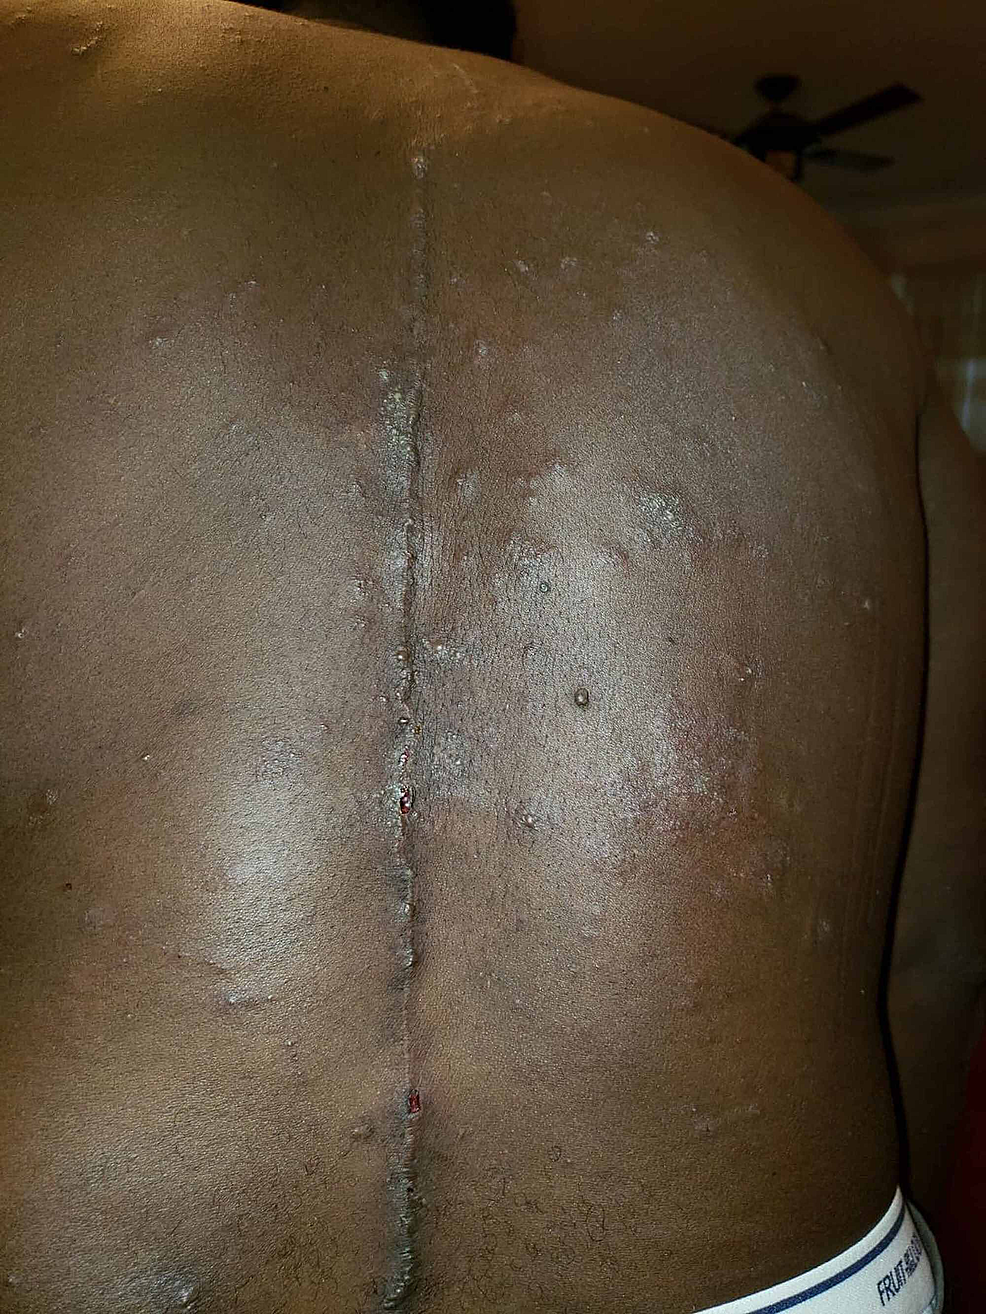 Sterile-pustules-distributed-throughout-the-back-and-torso-(note-previous-surgical-scar).